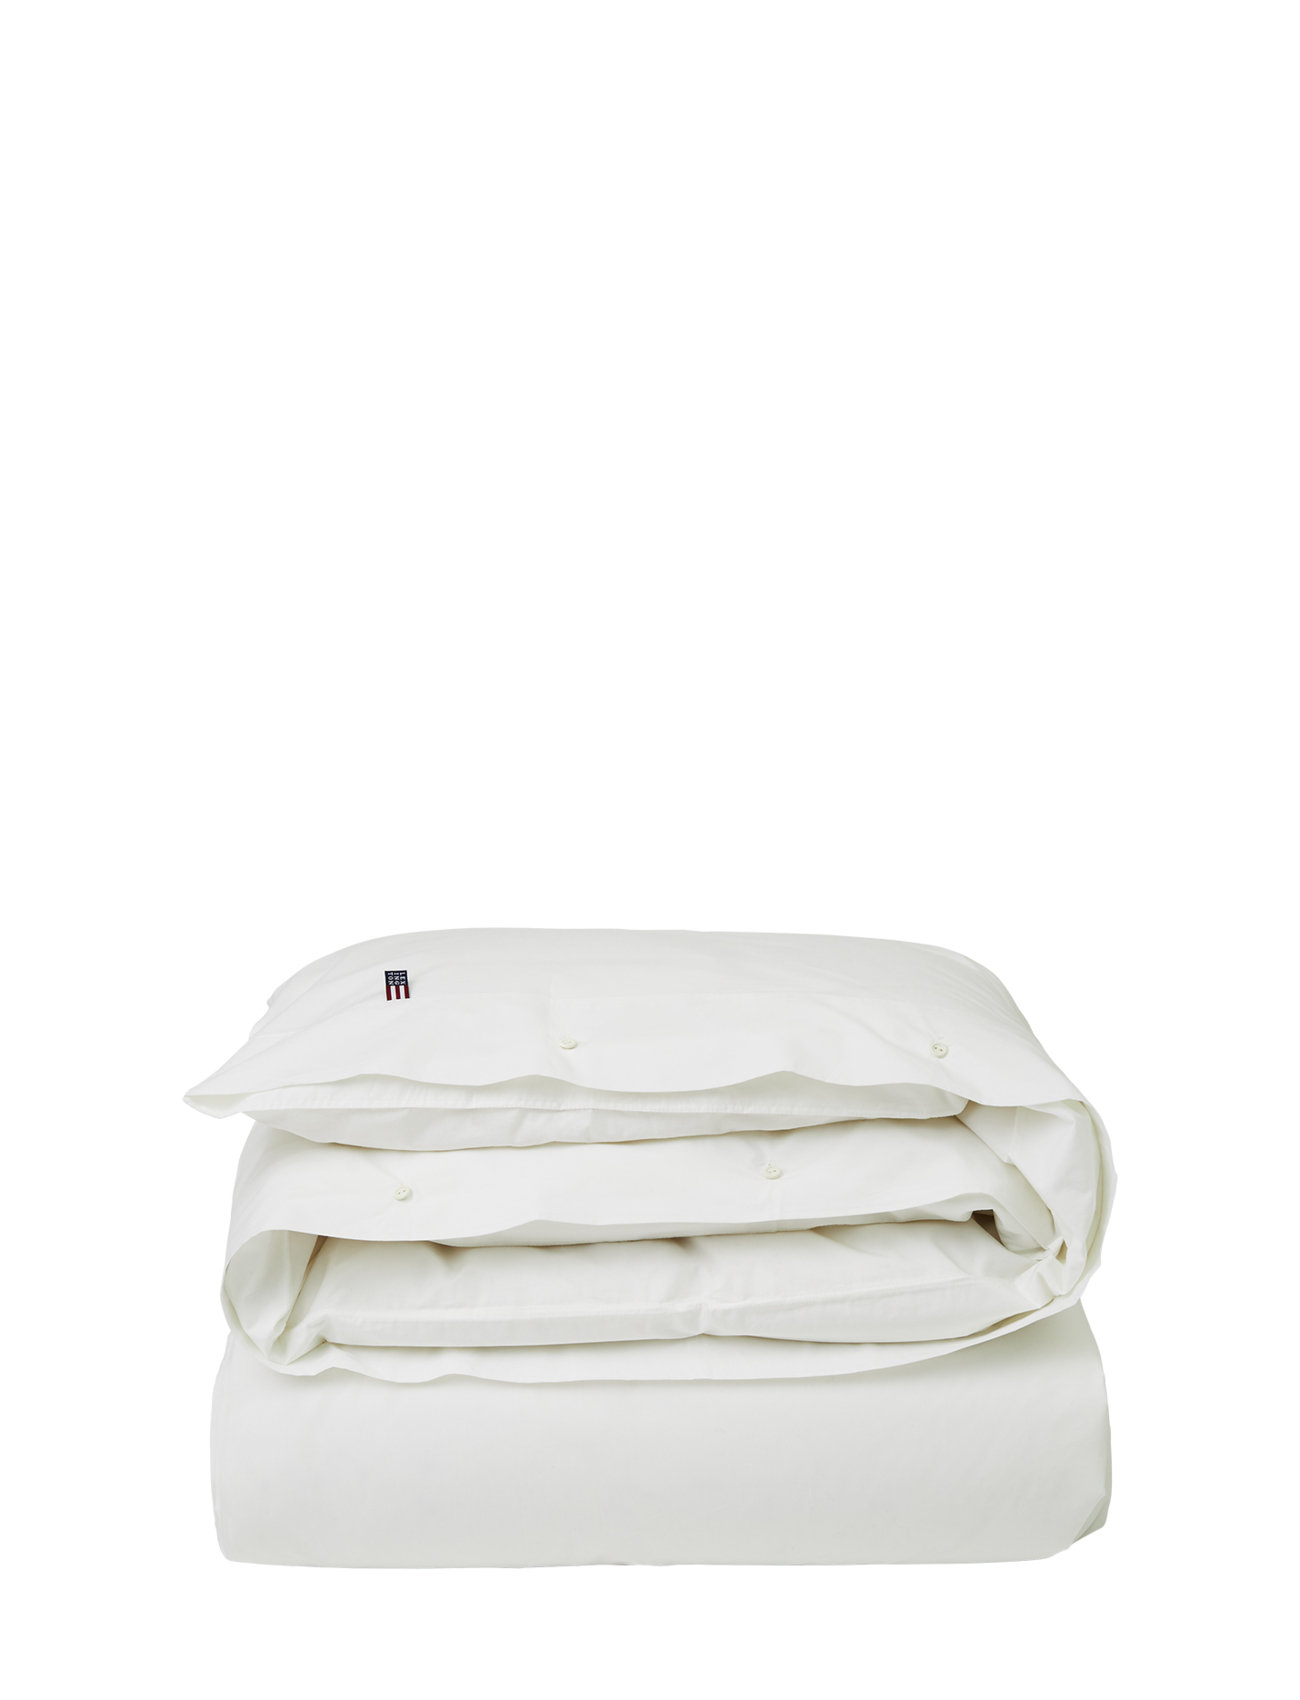 Lexington Home Pin Point White Duvet - WHITE